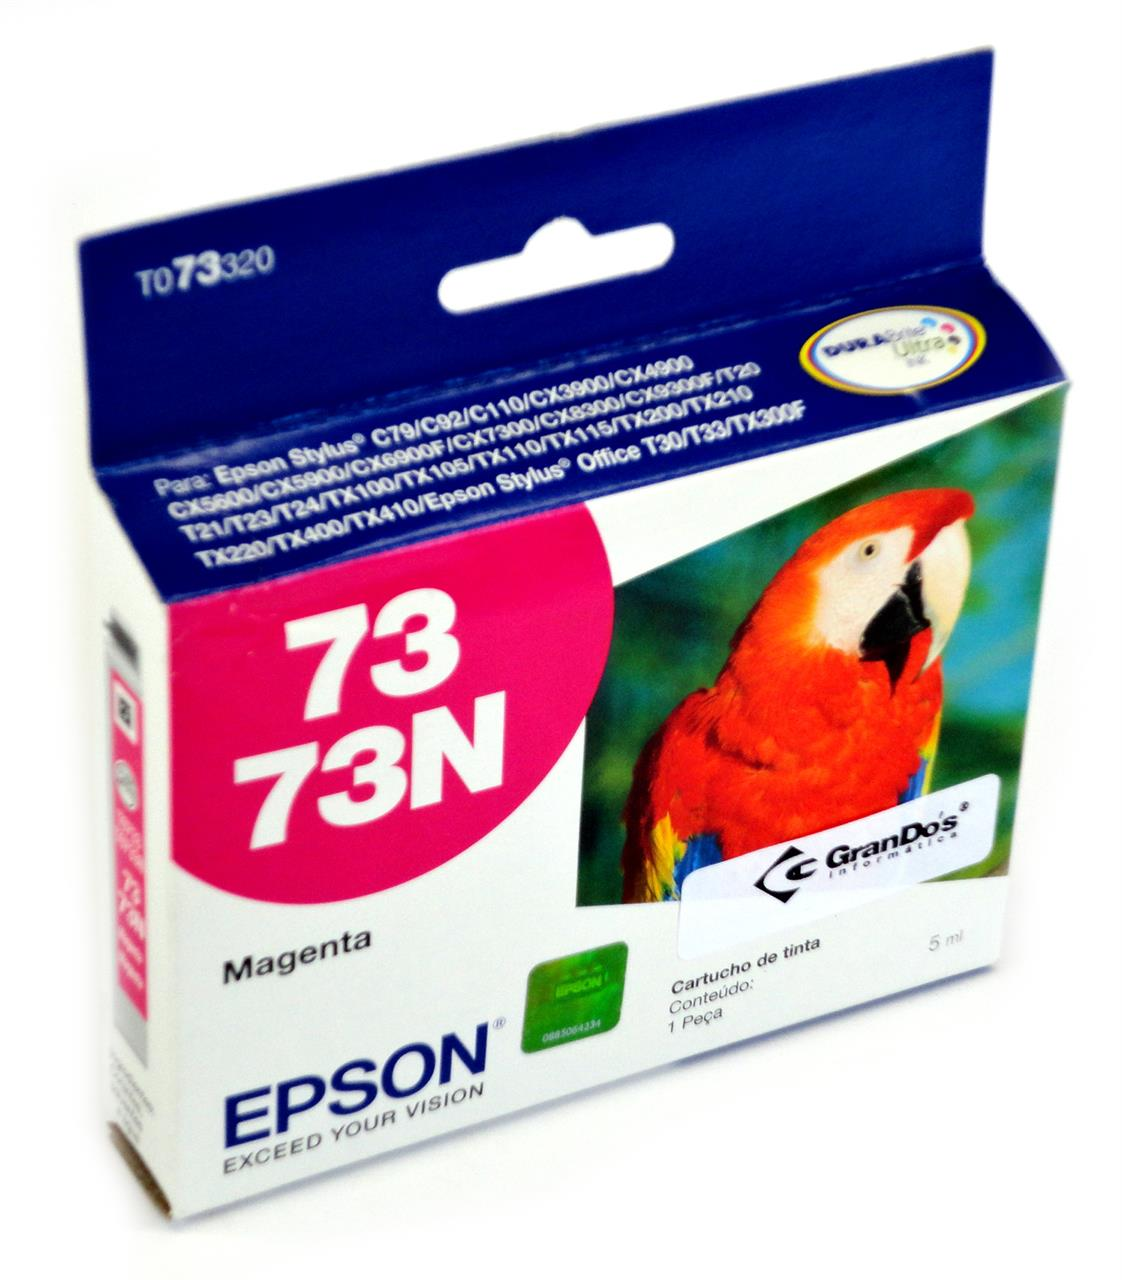 Cartucho Original Epson 73N Magenta TO73320